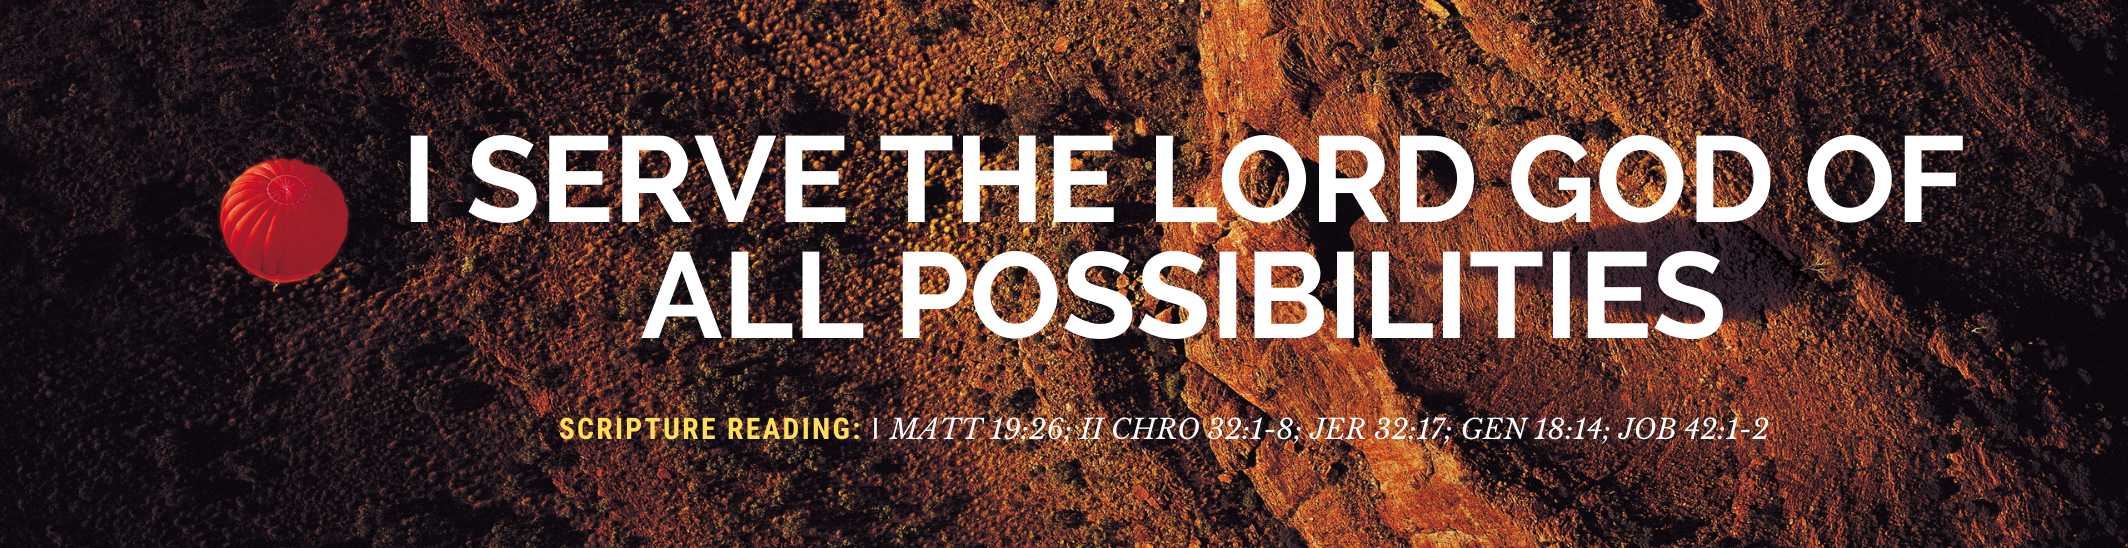 I Serve The Lord God Of All Possibilities